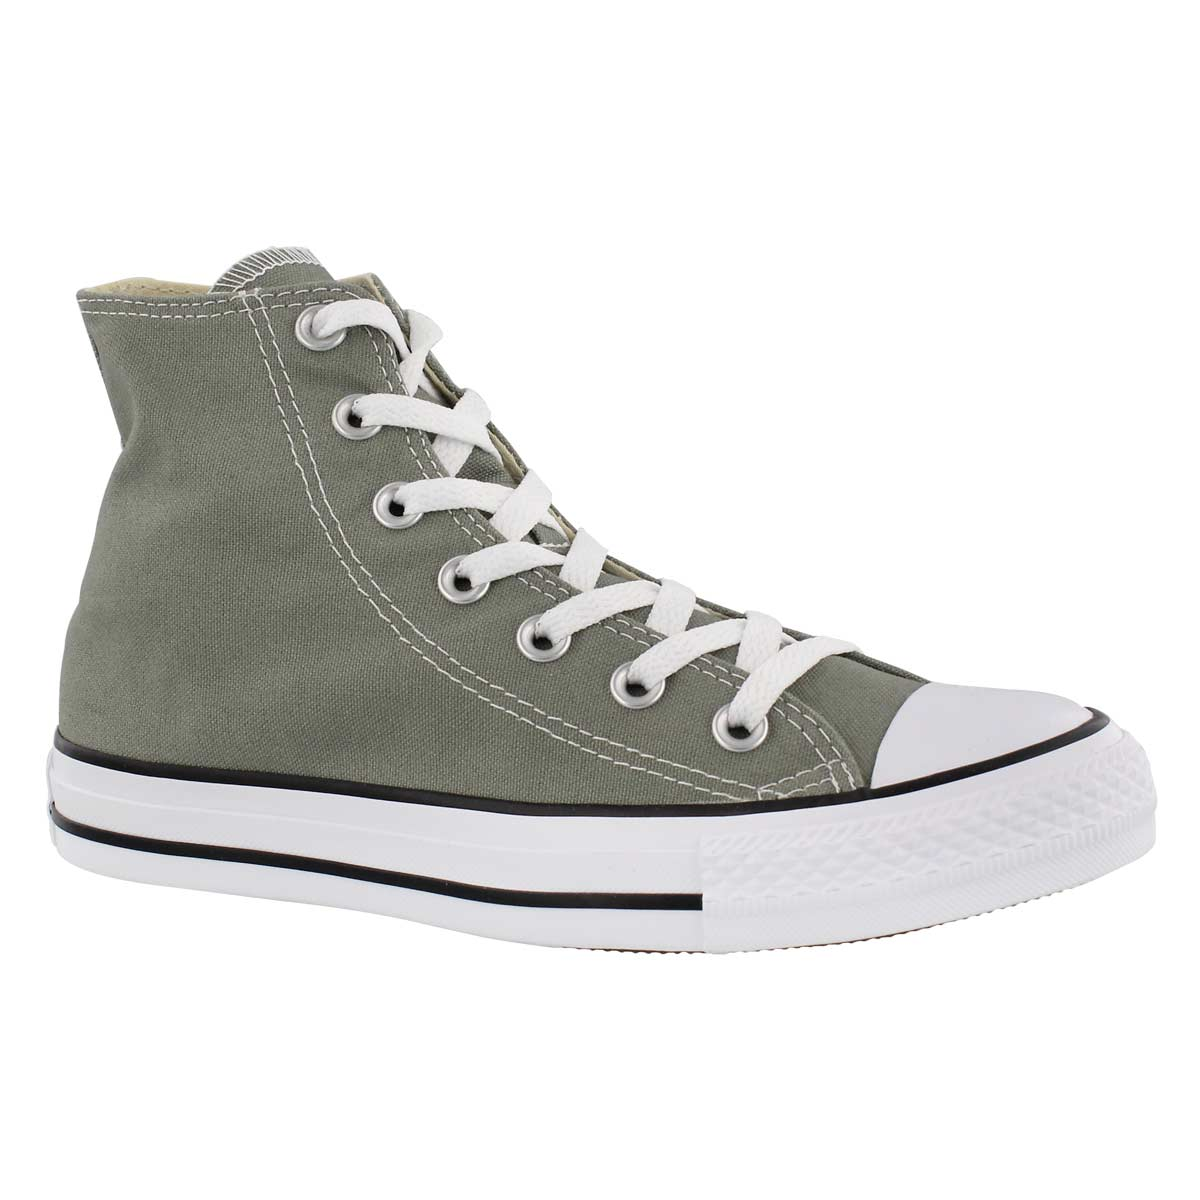 Women's CT ALL STAR SEASONAL dark stucco high tops